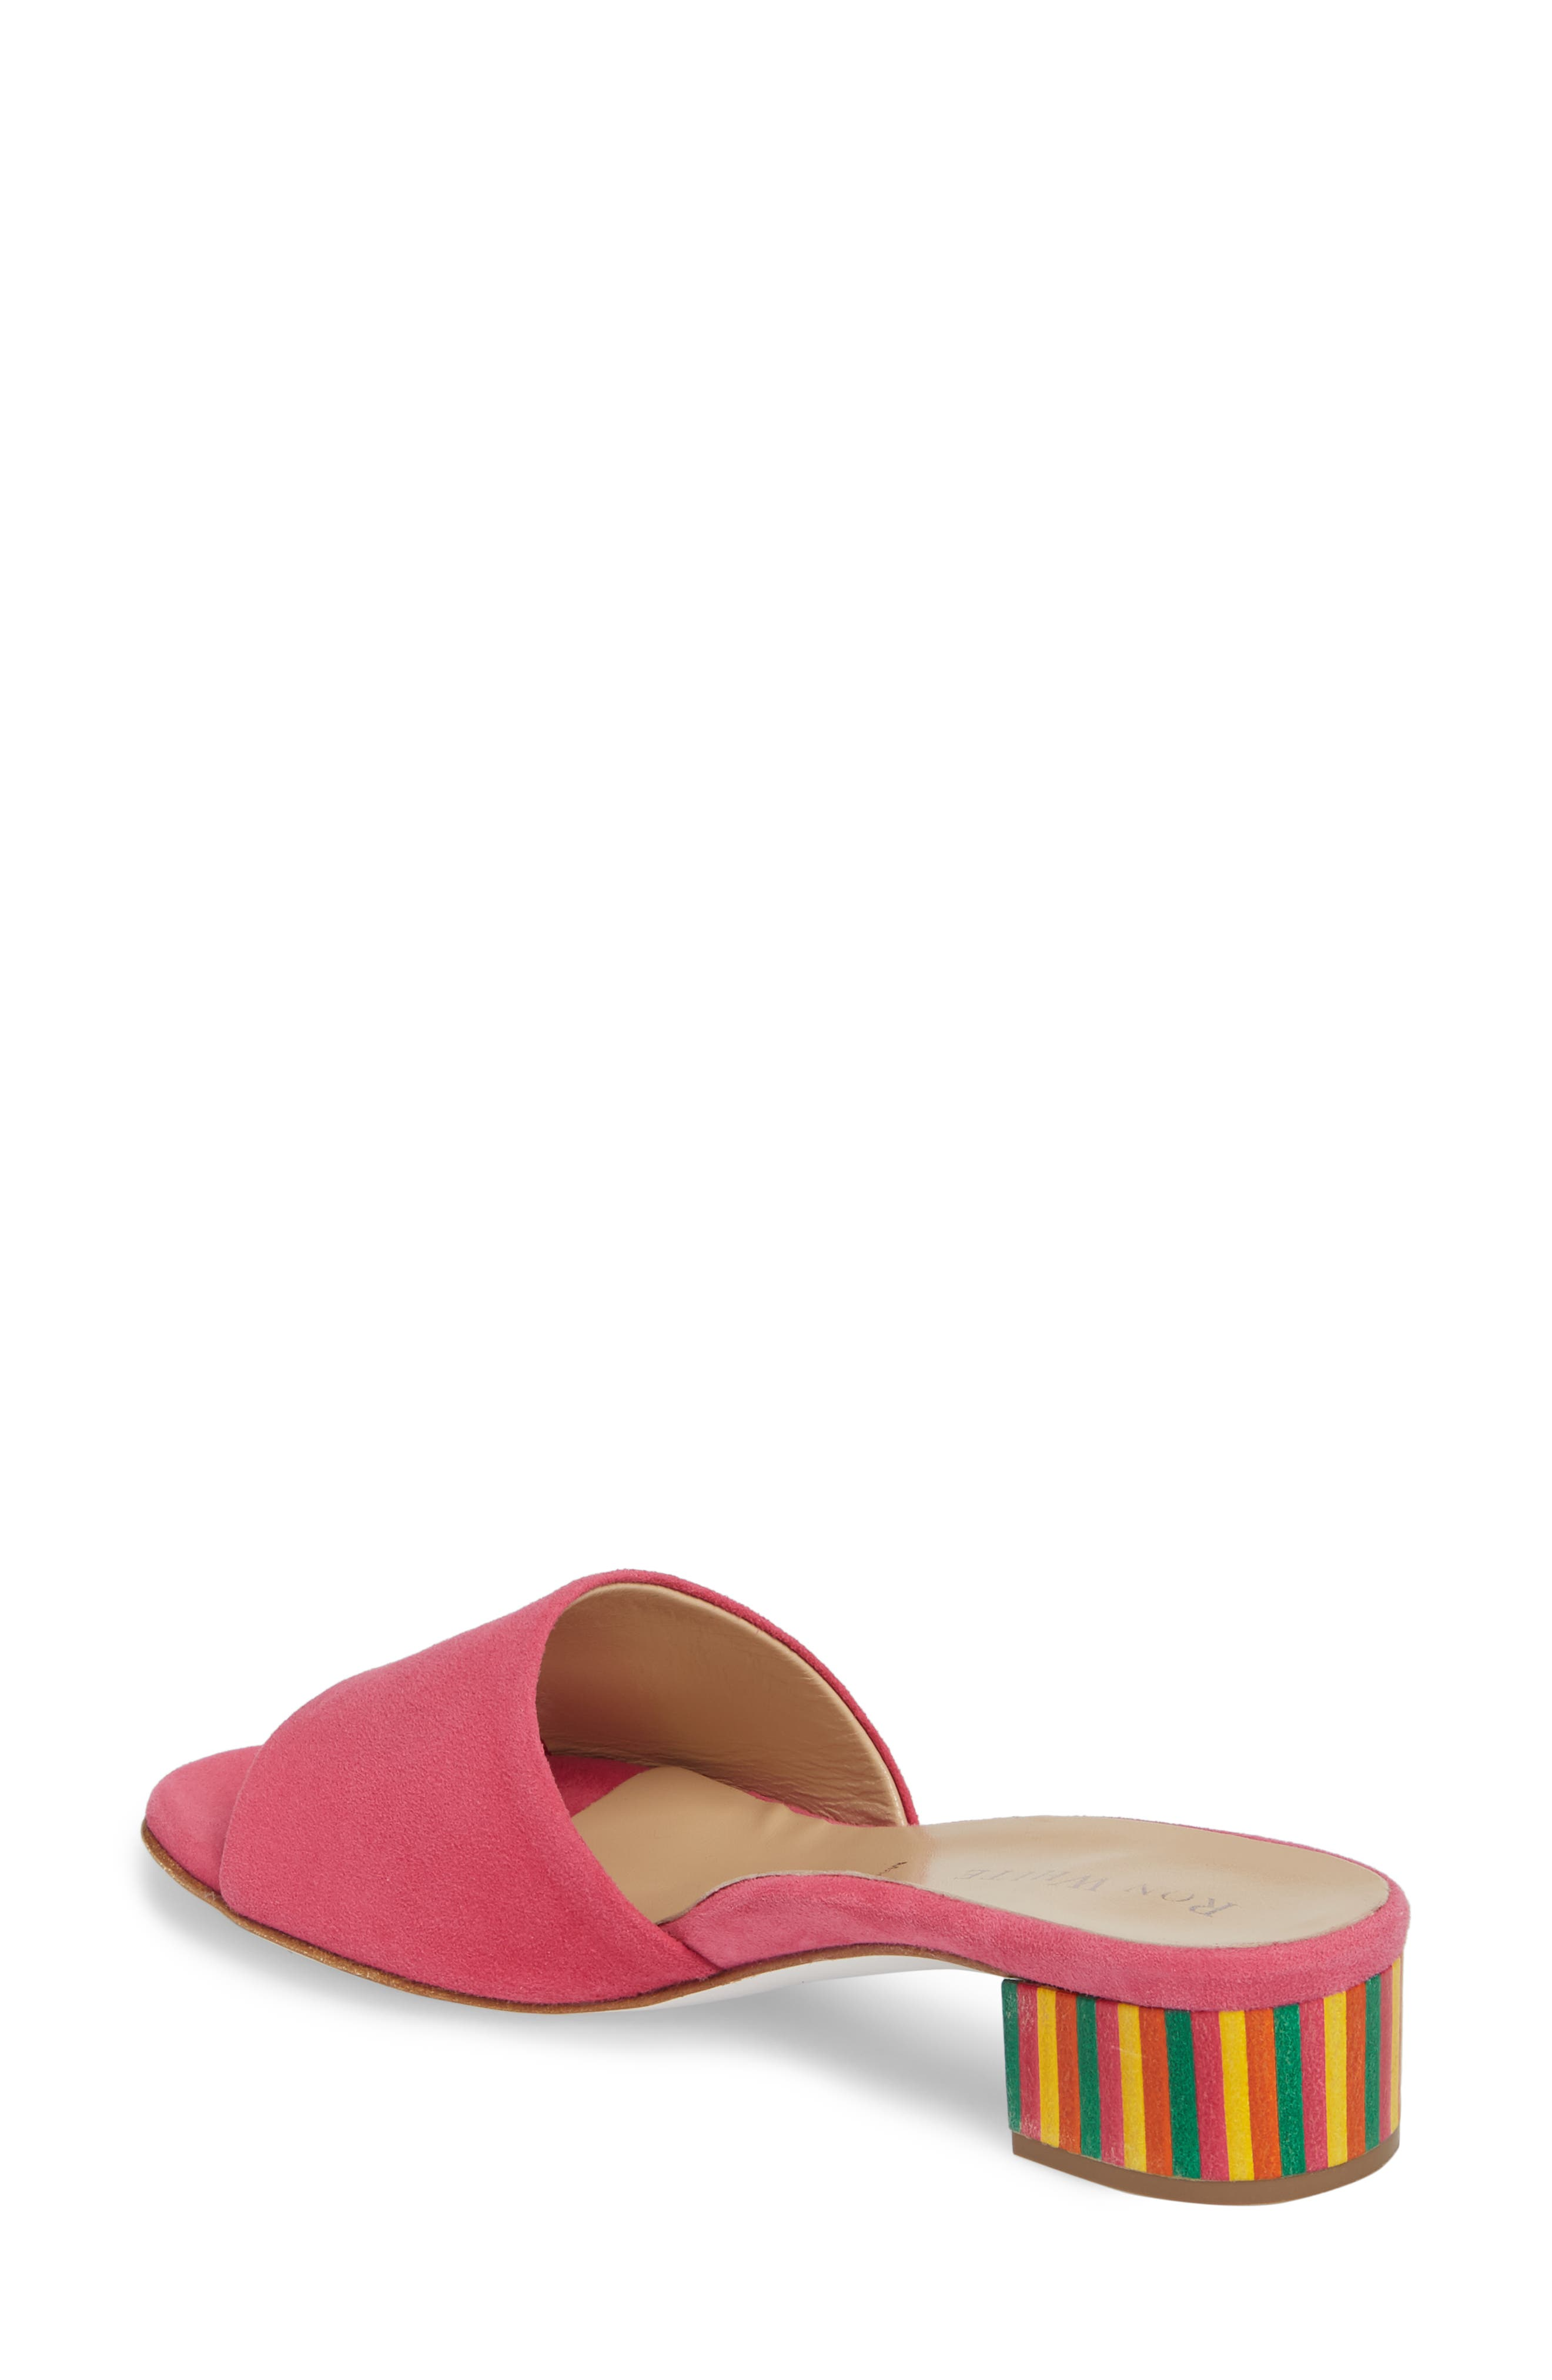 Esmarie Slide Sandal,                             Alternate thumbnail 2, color,                             670